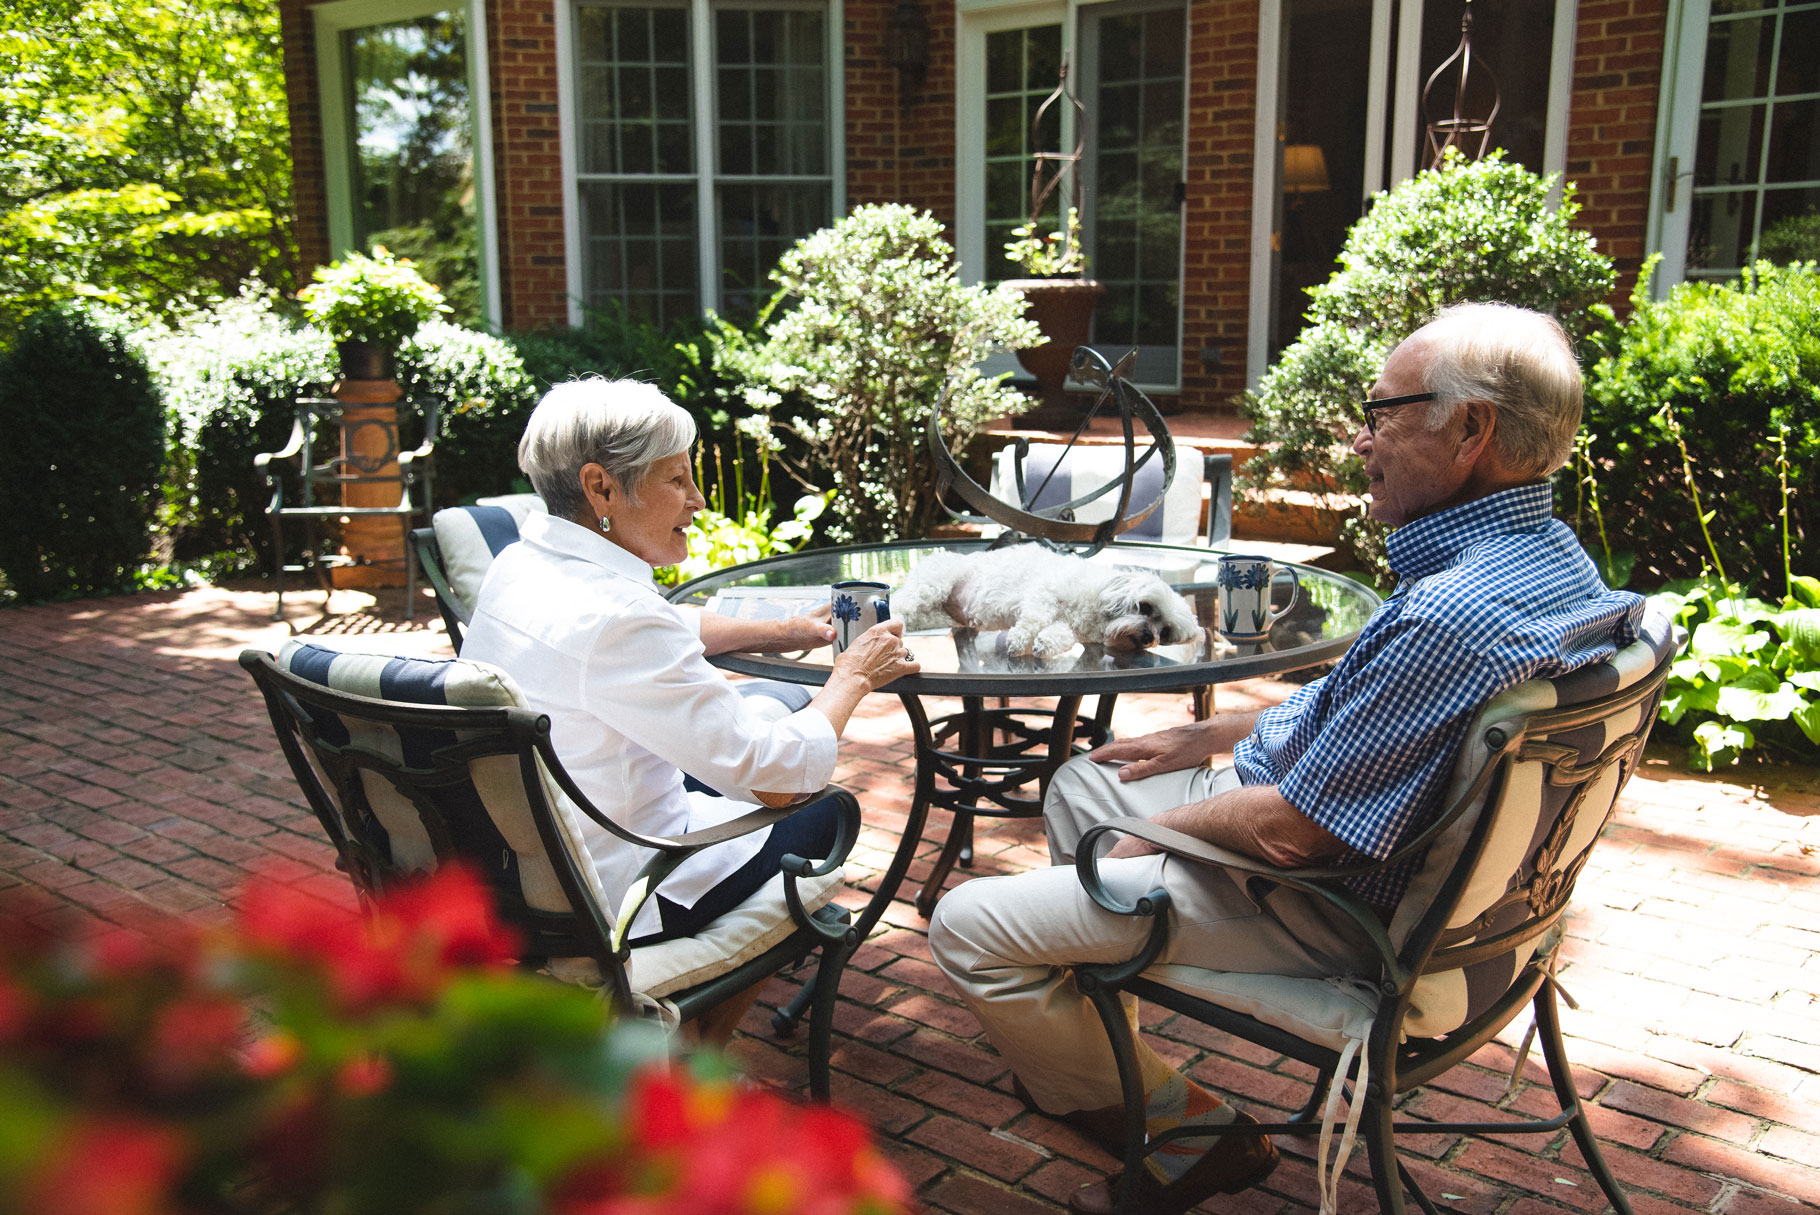 Gayle and her husband chat over coffee outside while their dog rests on a table.